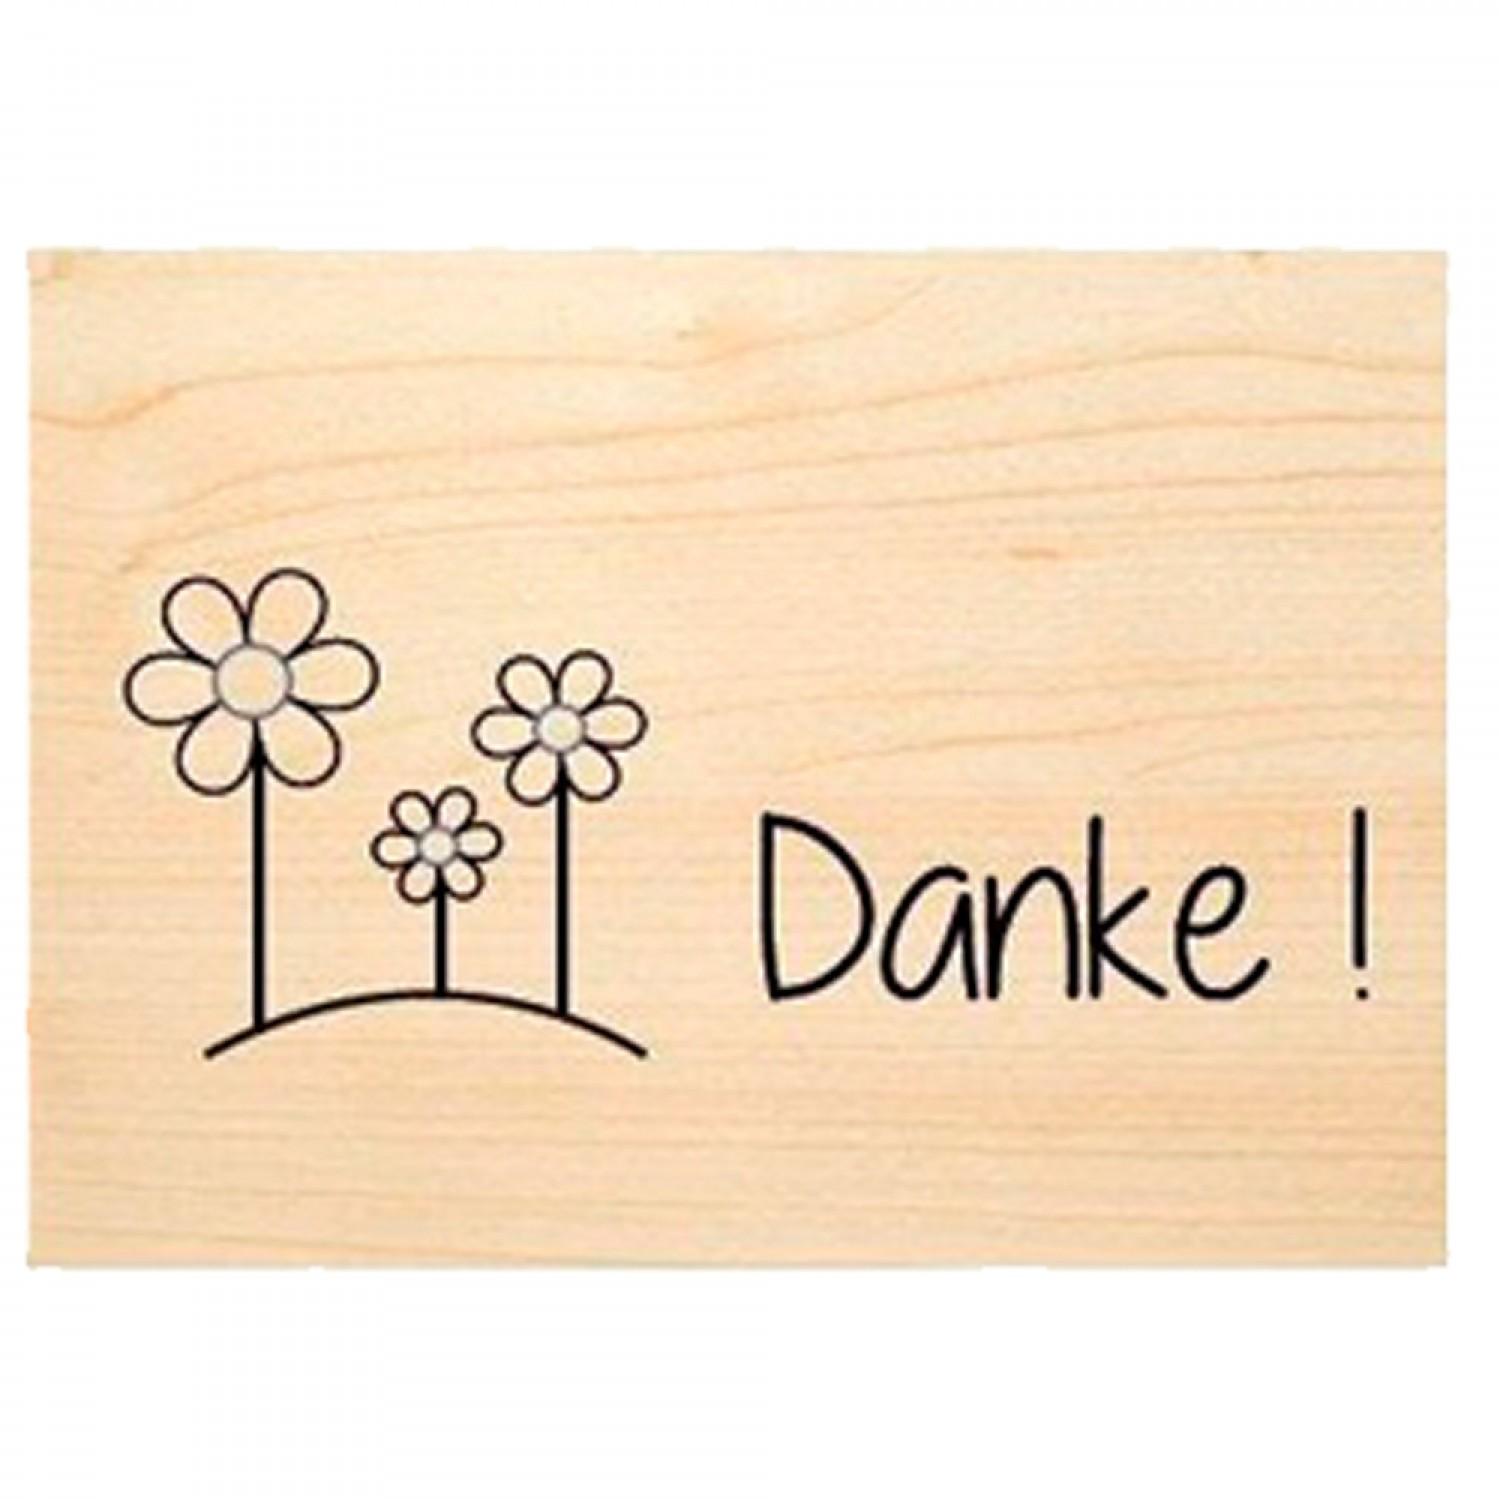 DANKE (Thanks) wooden postcard - Say it with Nature | Biodora